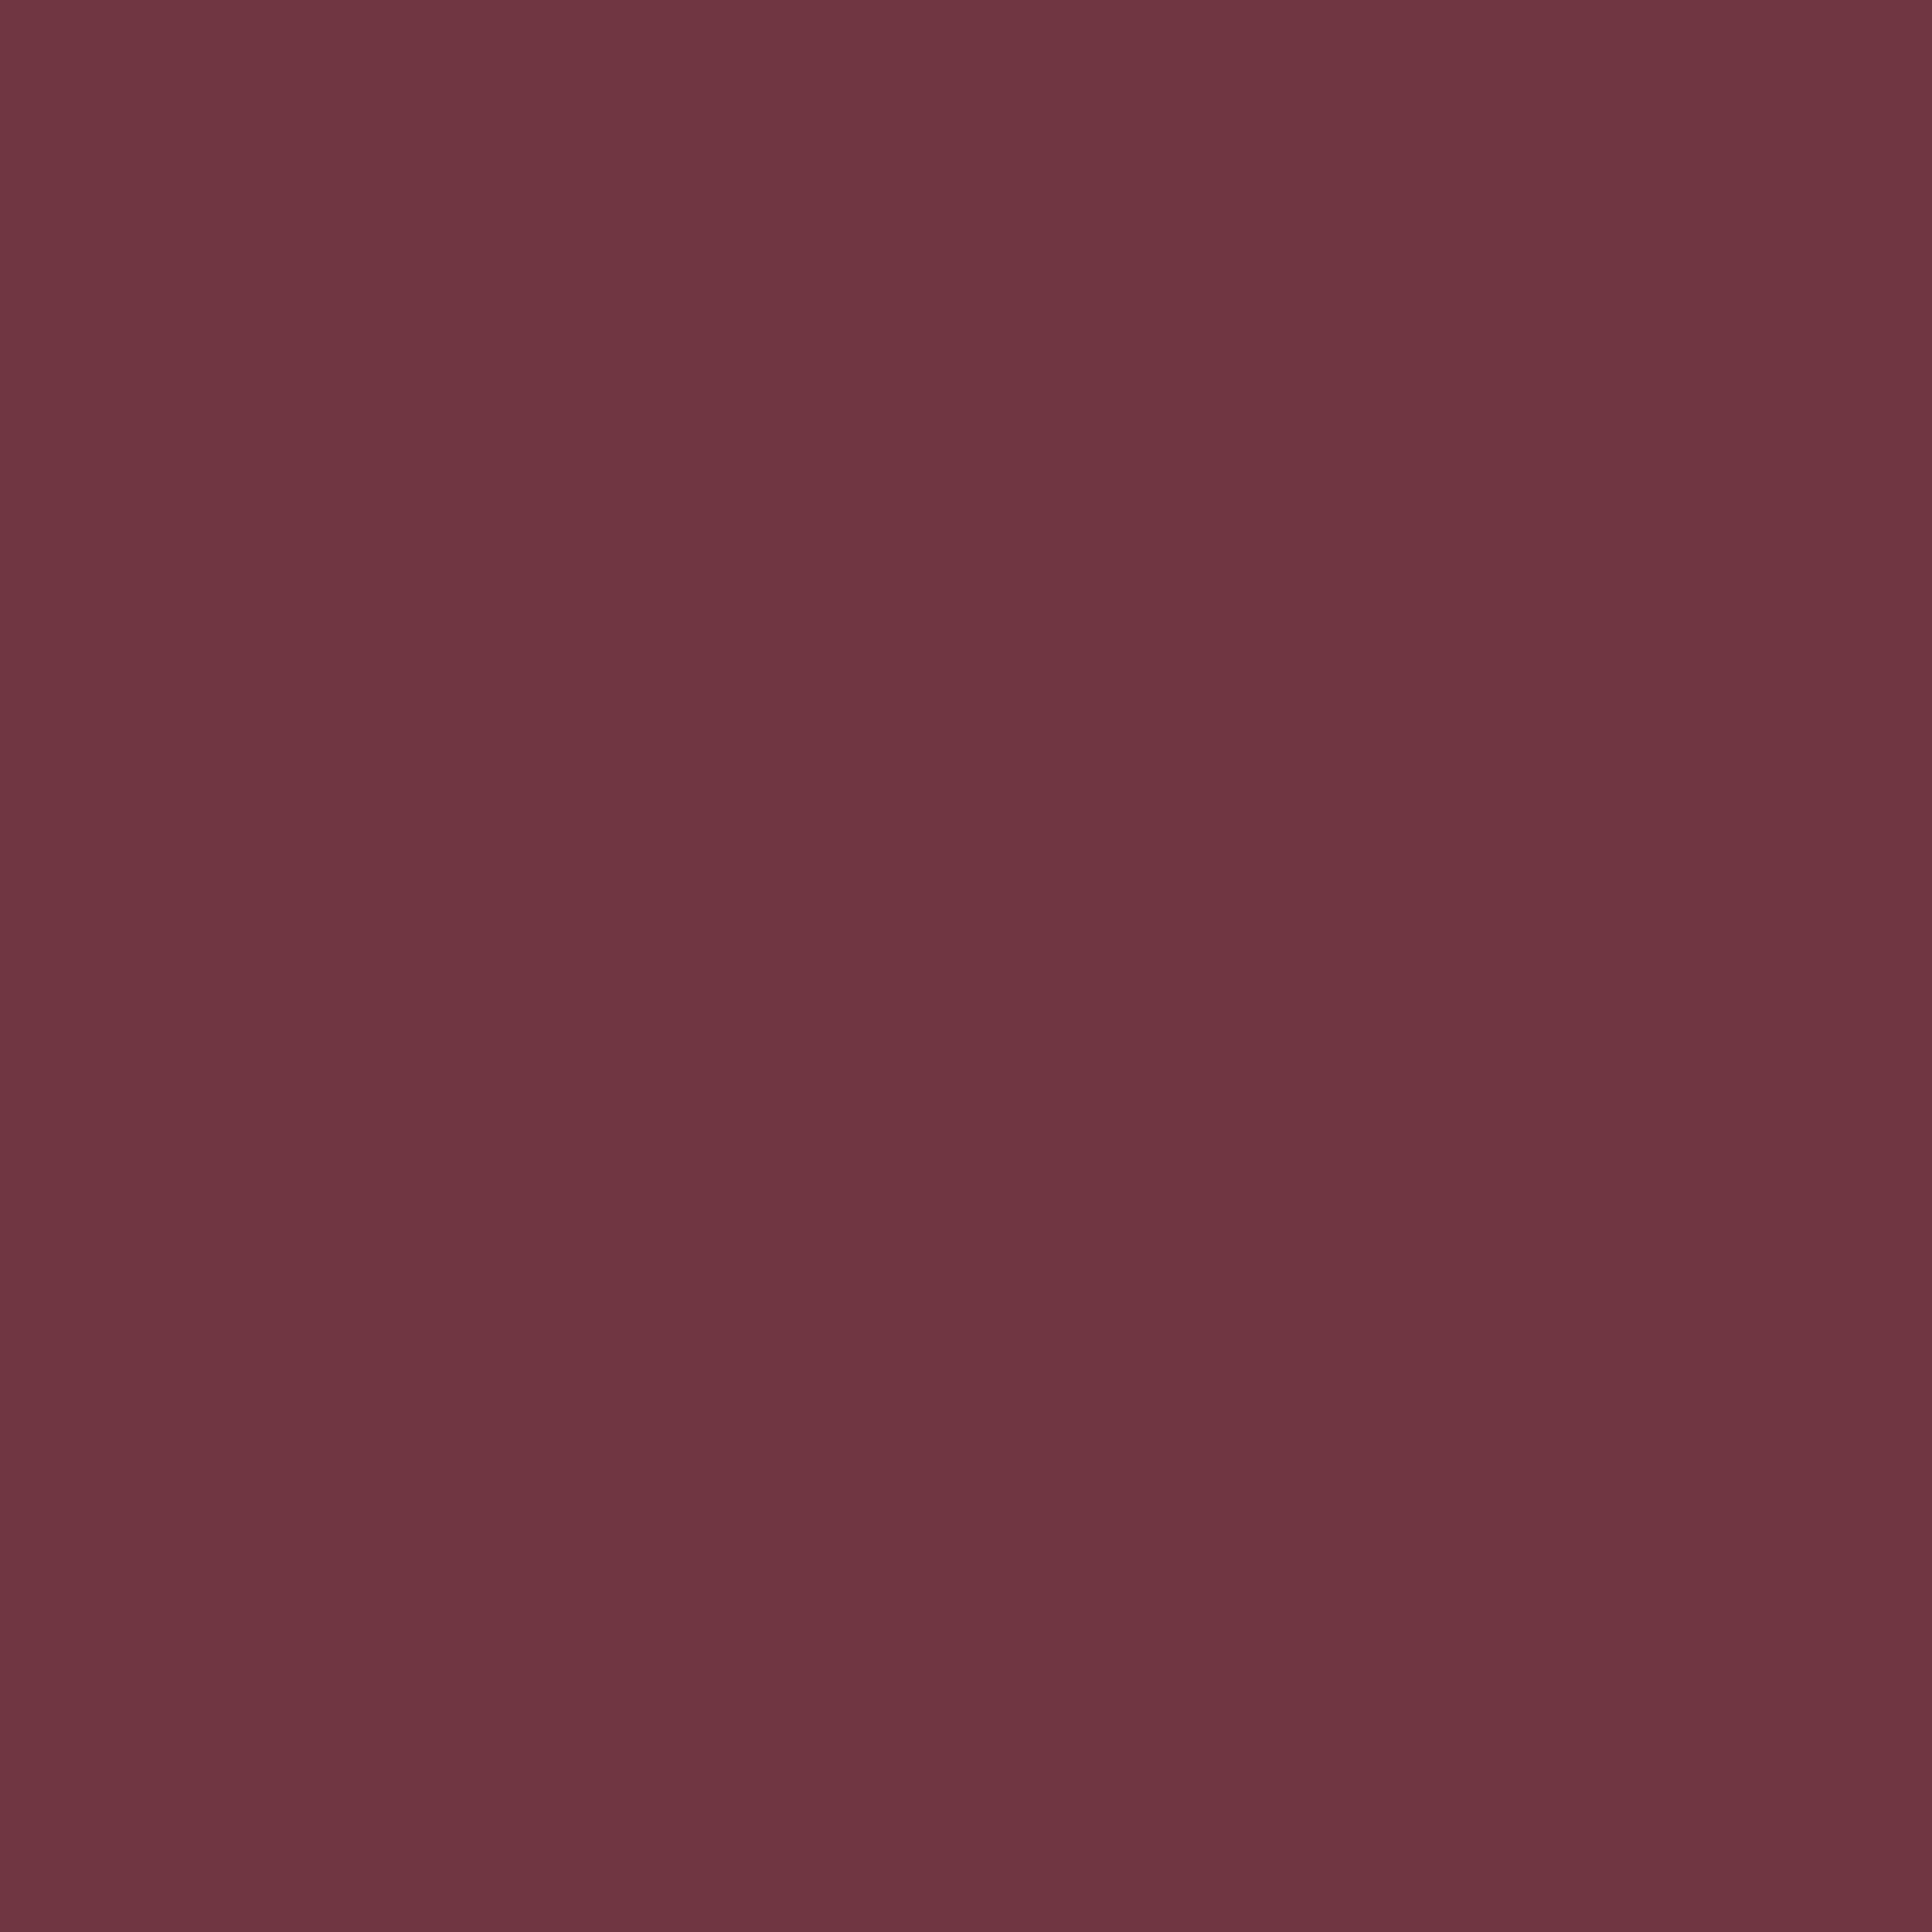 2732x2732 Catawba Solid Color Background